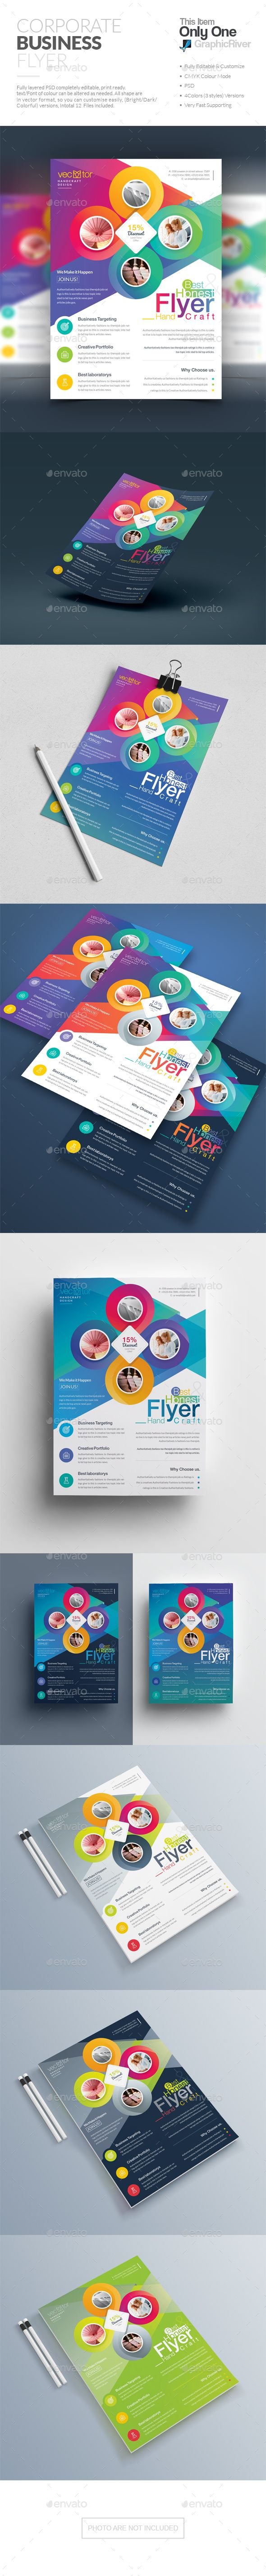 Flyer Design Template PSD | Flyer Templates | Pinterest | Tarjetas ...